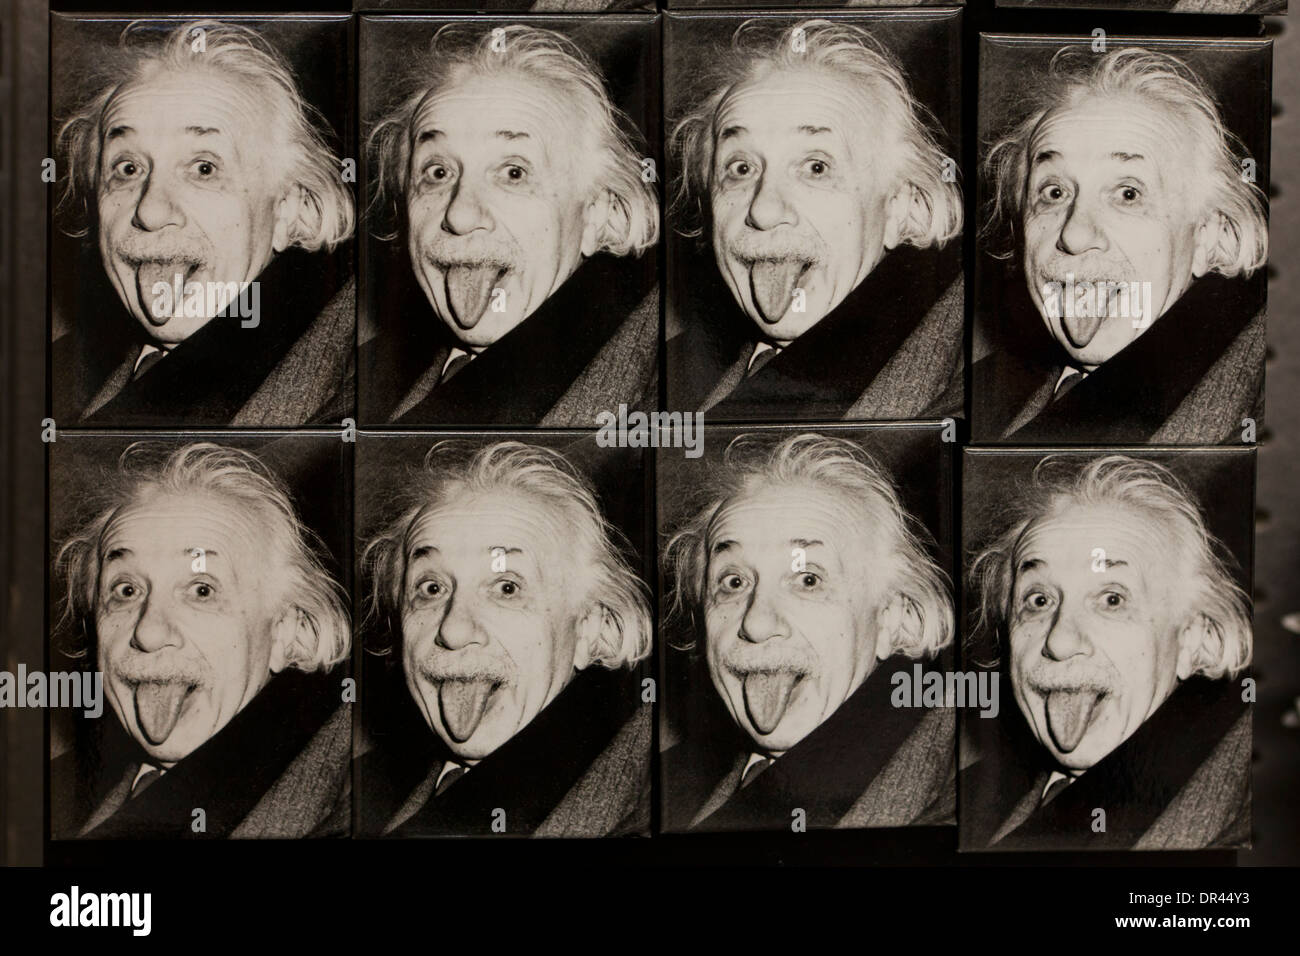 Albert Einstein sticking out tongue photo buttons - Stock Image